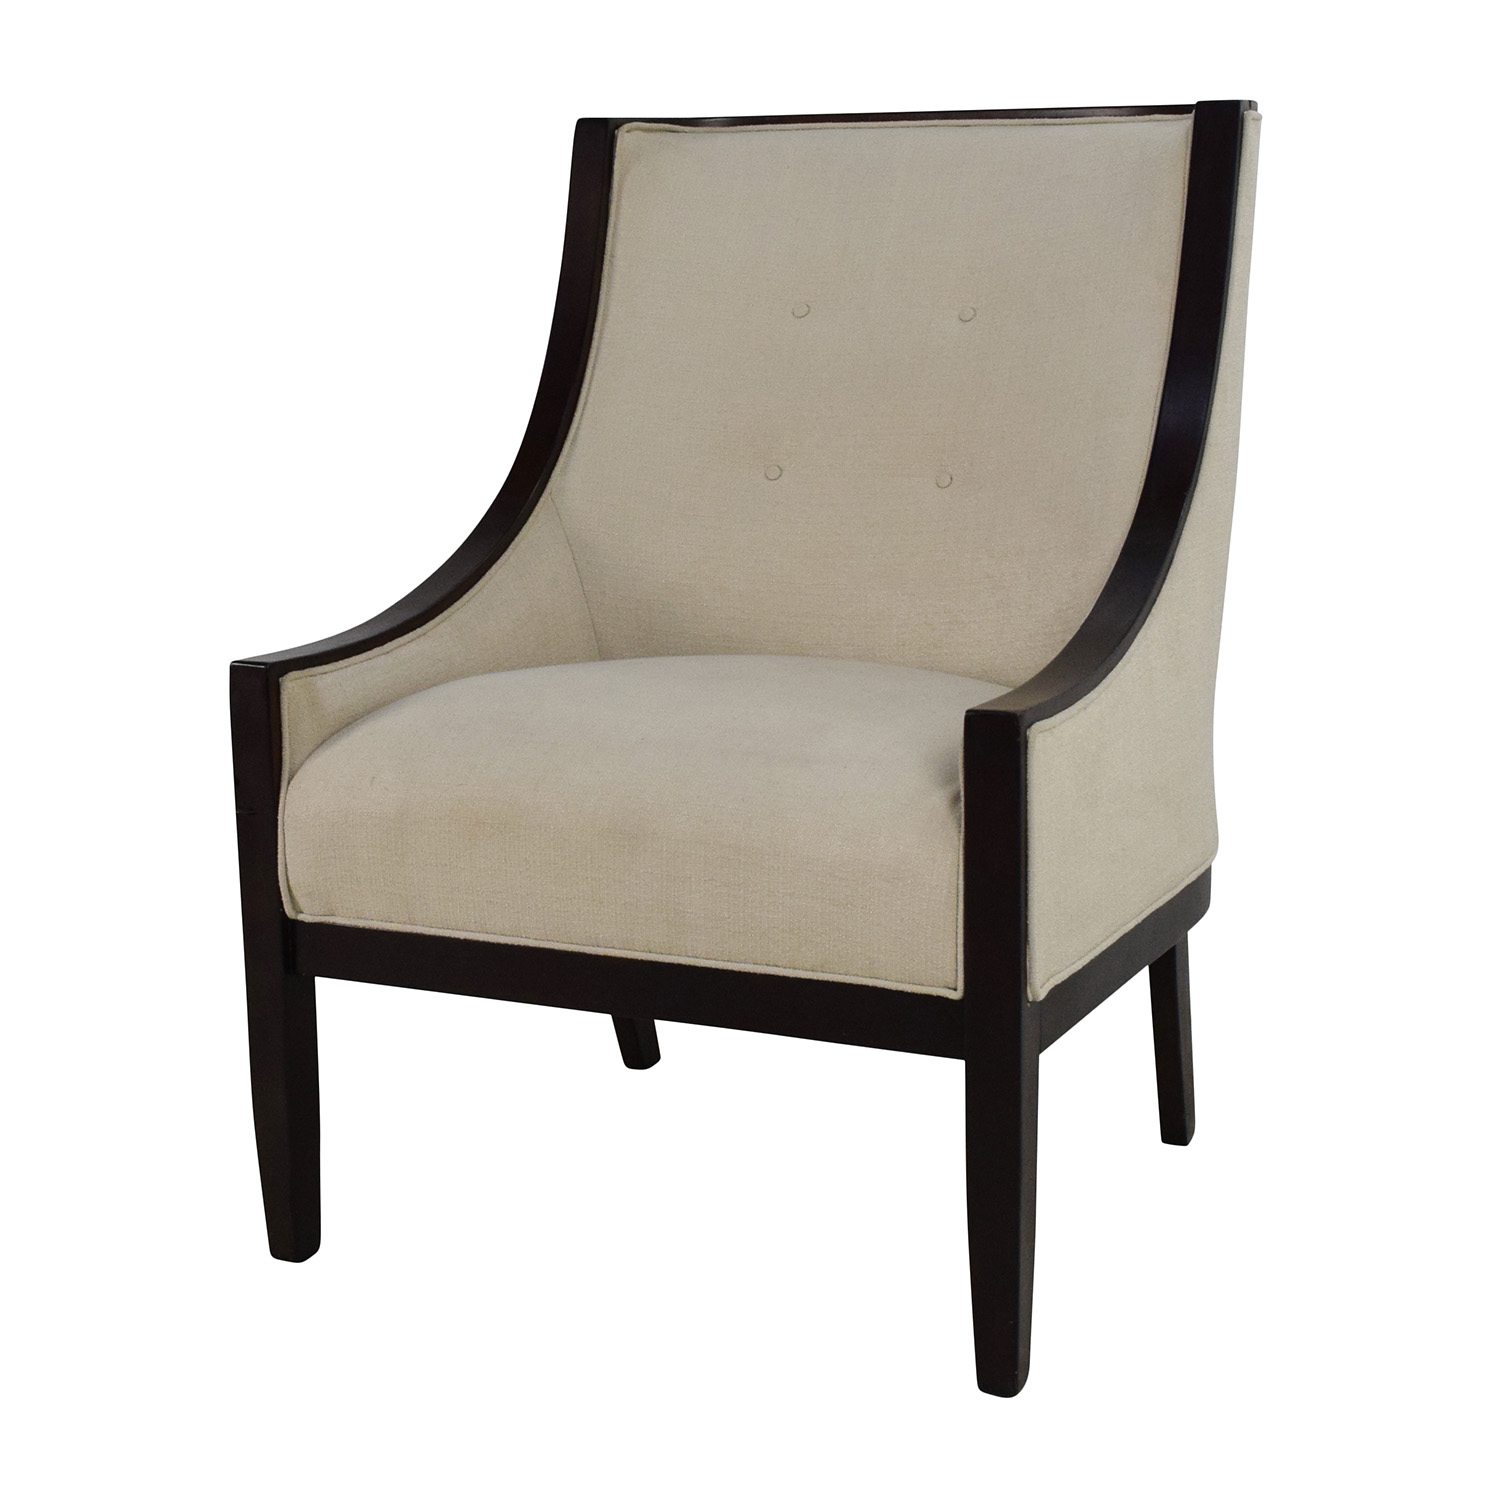 high back tufted chair cushions for ghost chairs 87 off bloomingdales bloomingdale 39s cream